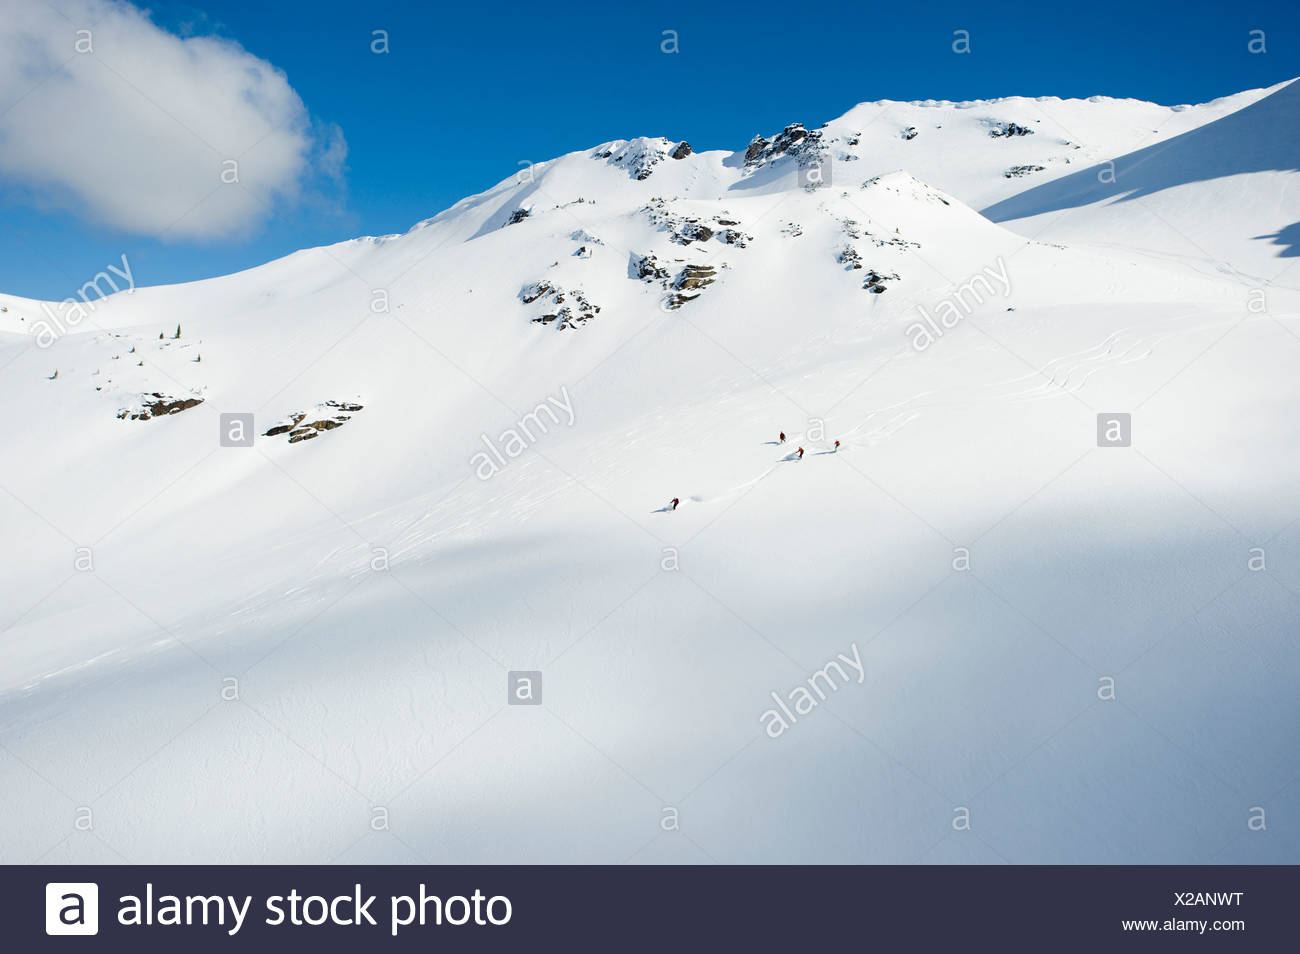 A group of skiers take a run down a large alpine bowl in the backcountry of the Selkirk Mountains, Canada. Stock Photo